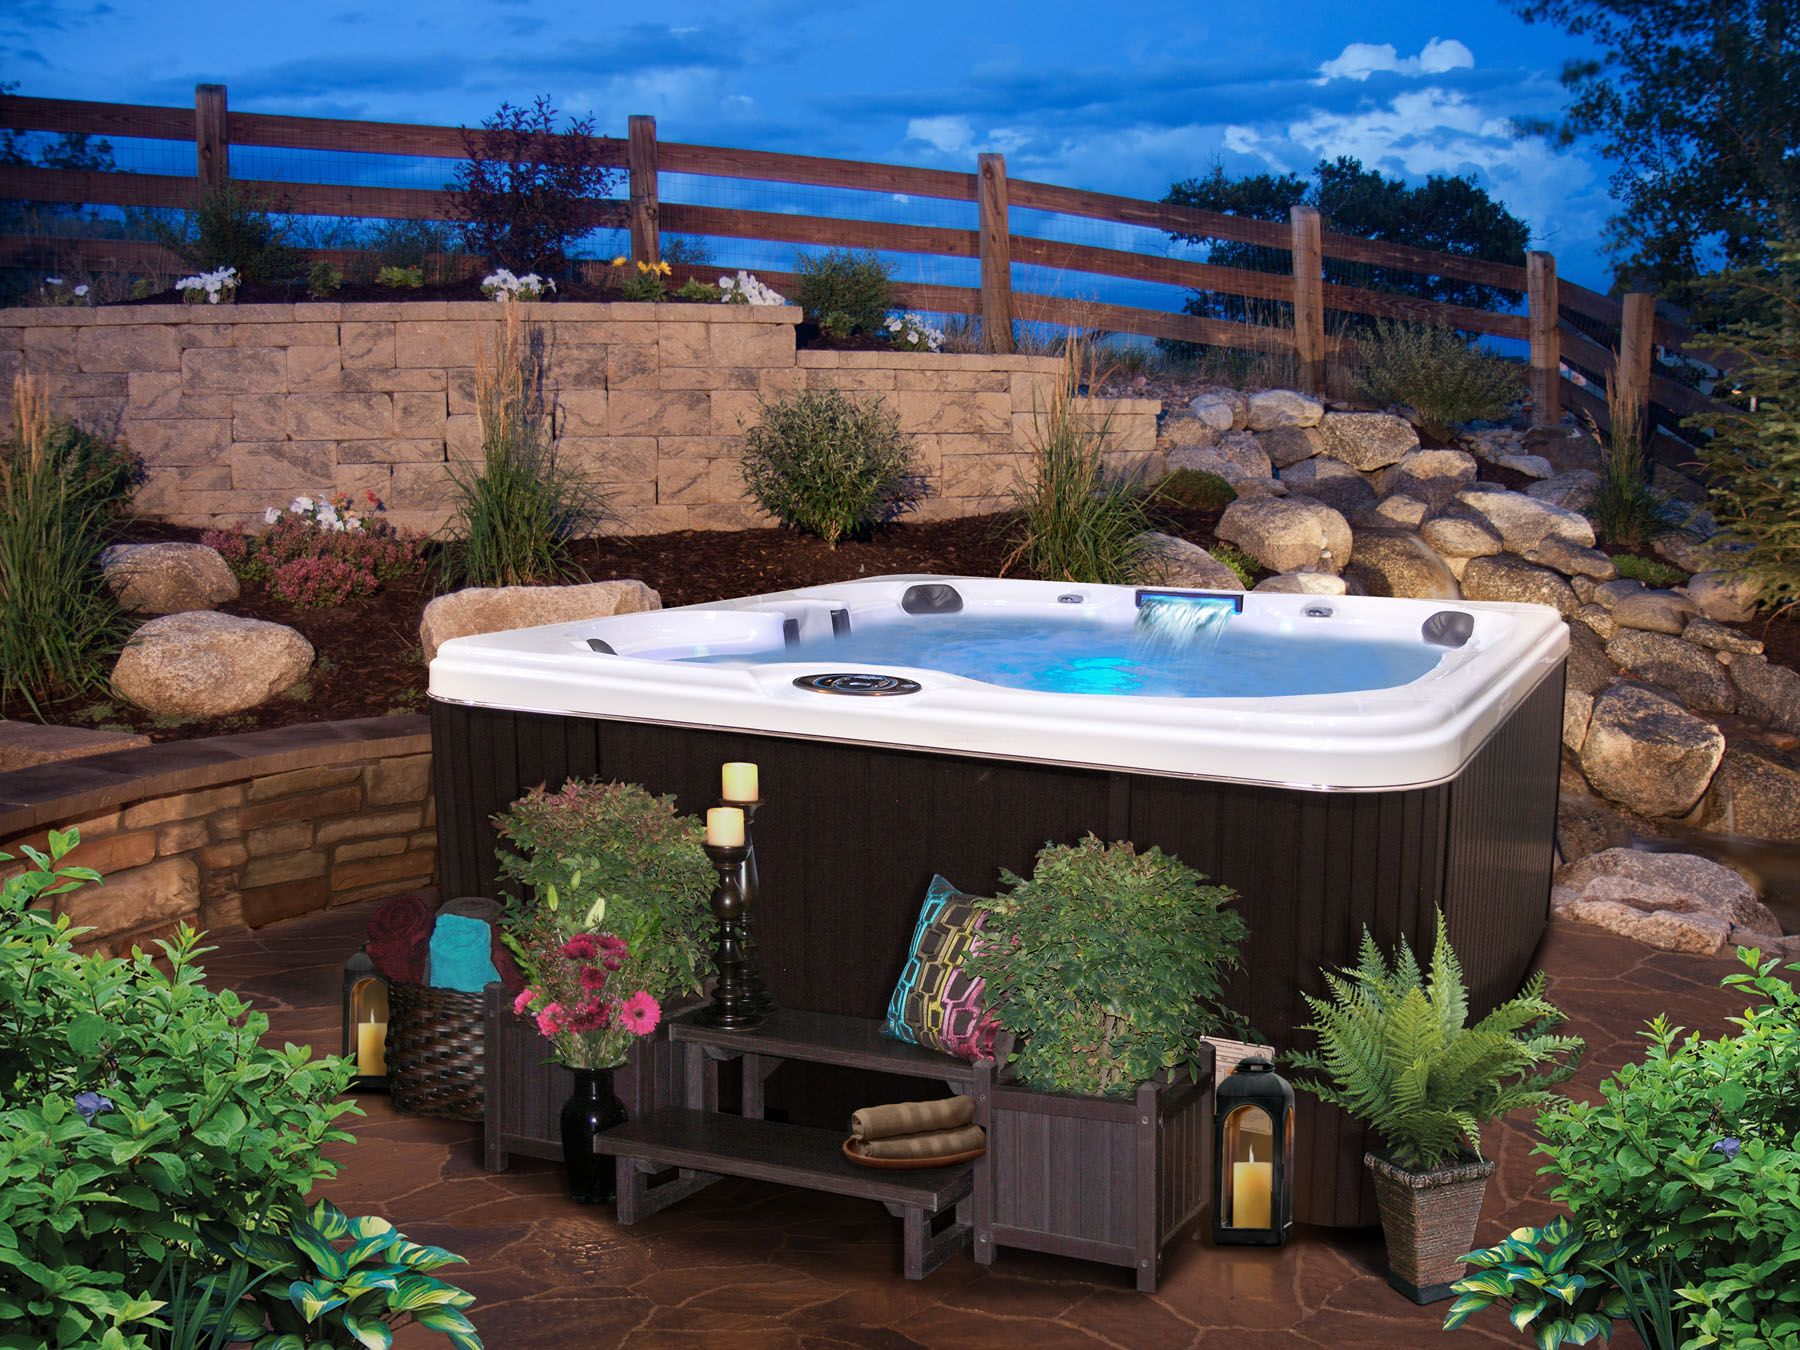 Hot Tub Landscaping For Beauty And Function Hot Tub Outdoor Hot Tub Landscaping Hot Tub Patio